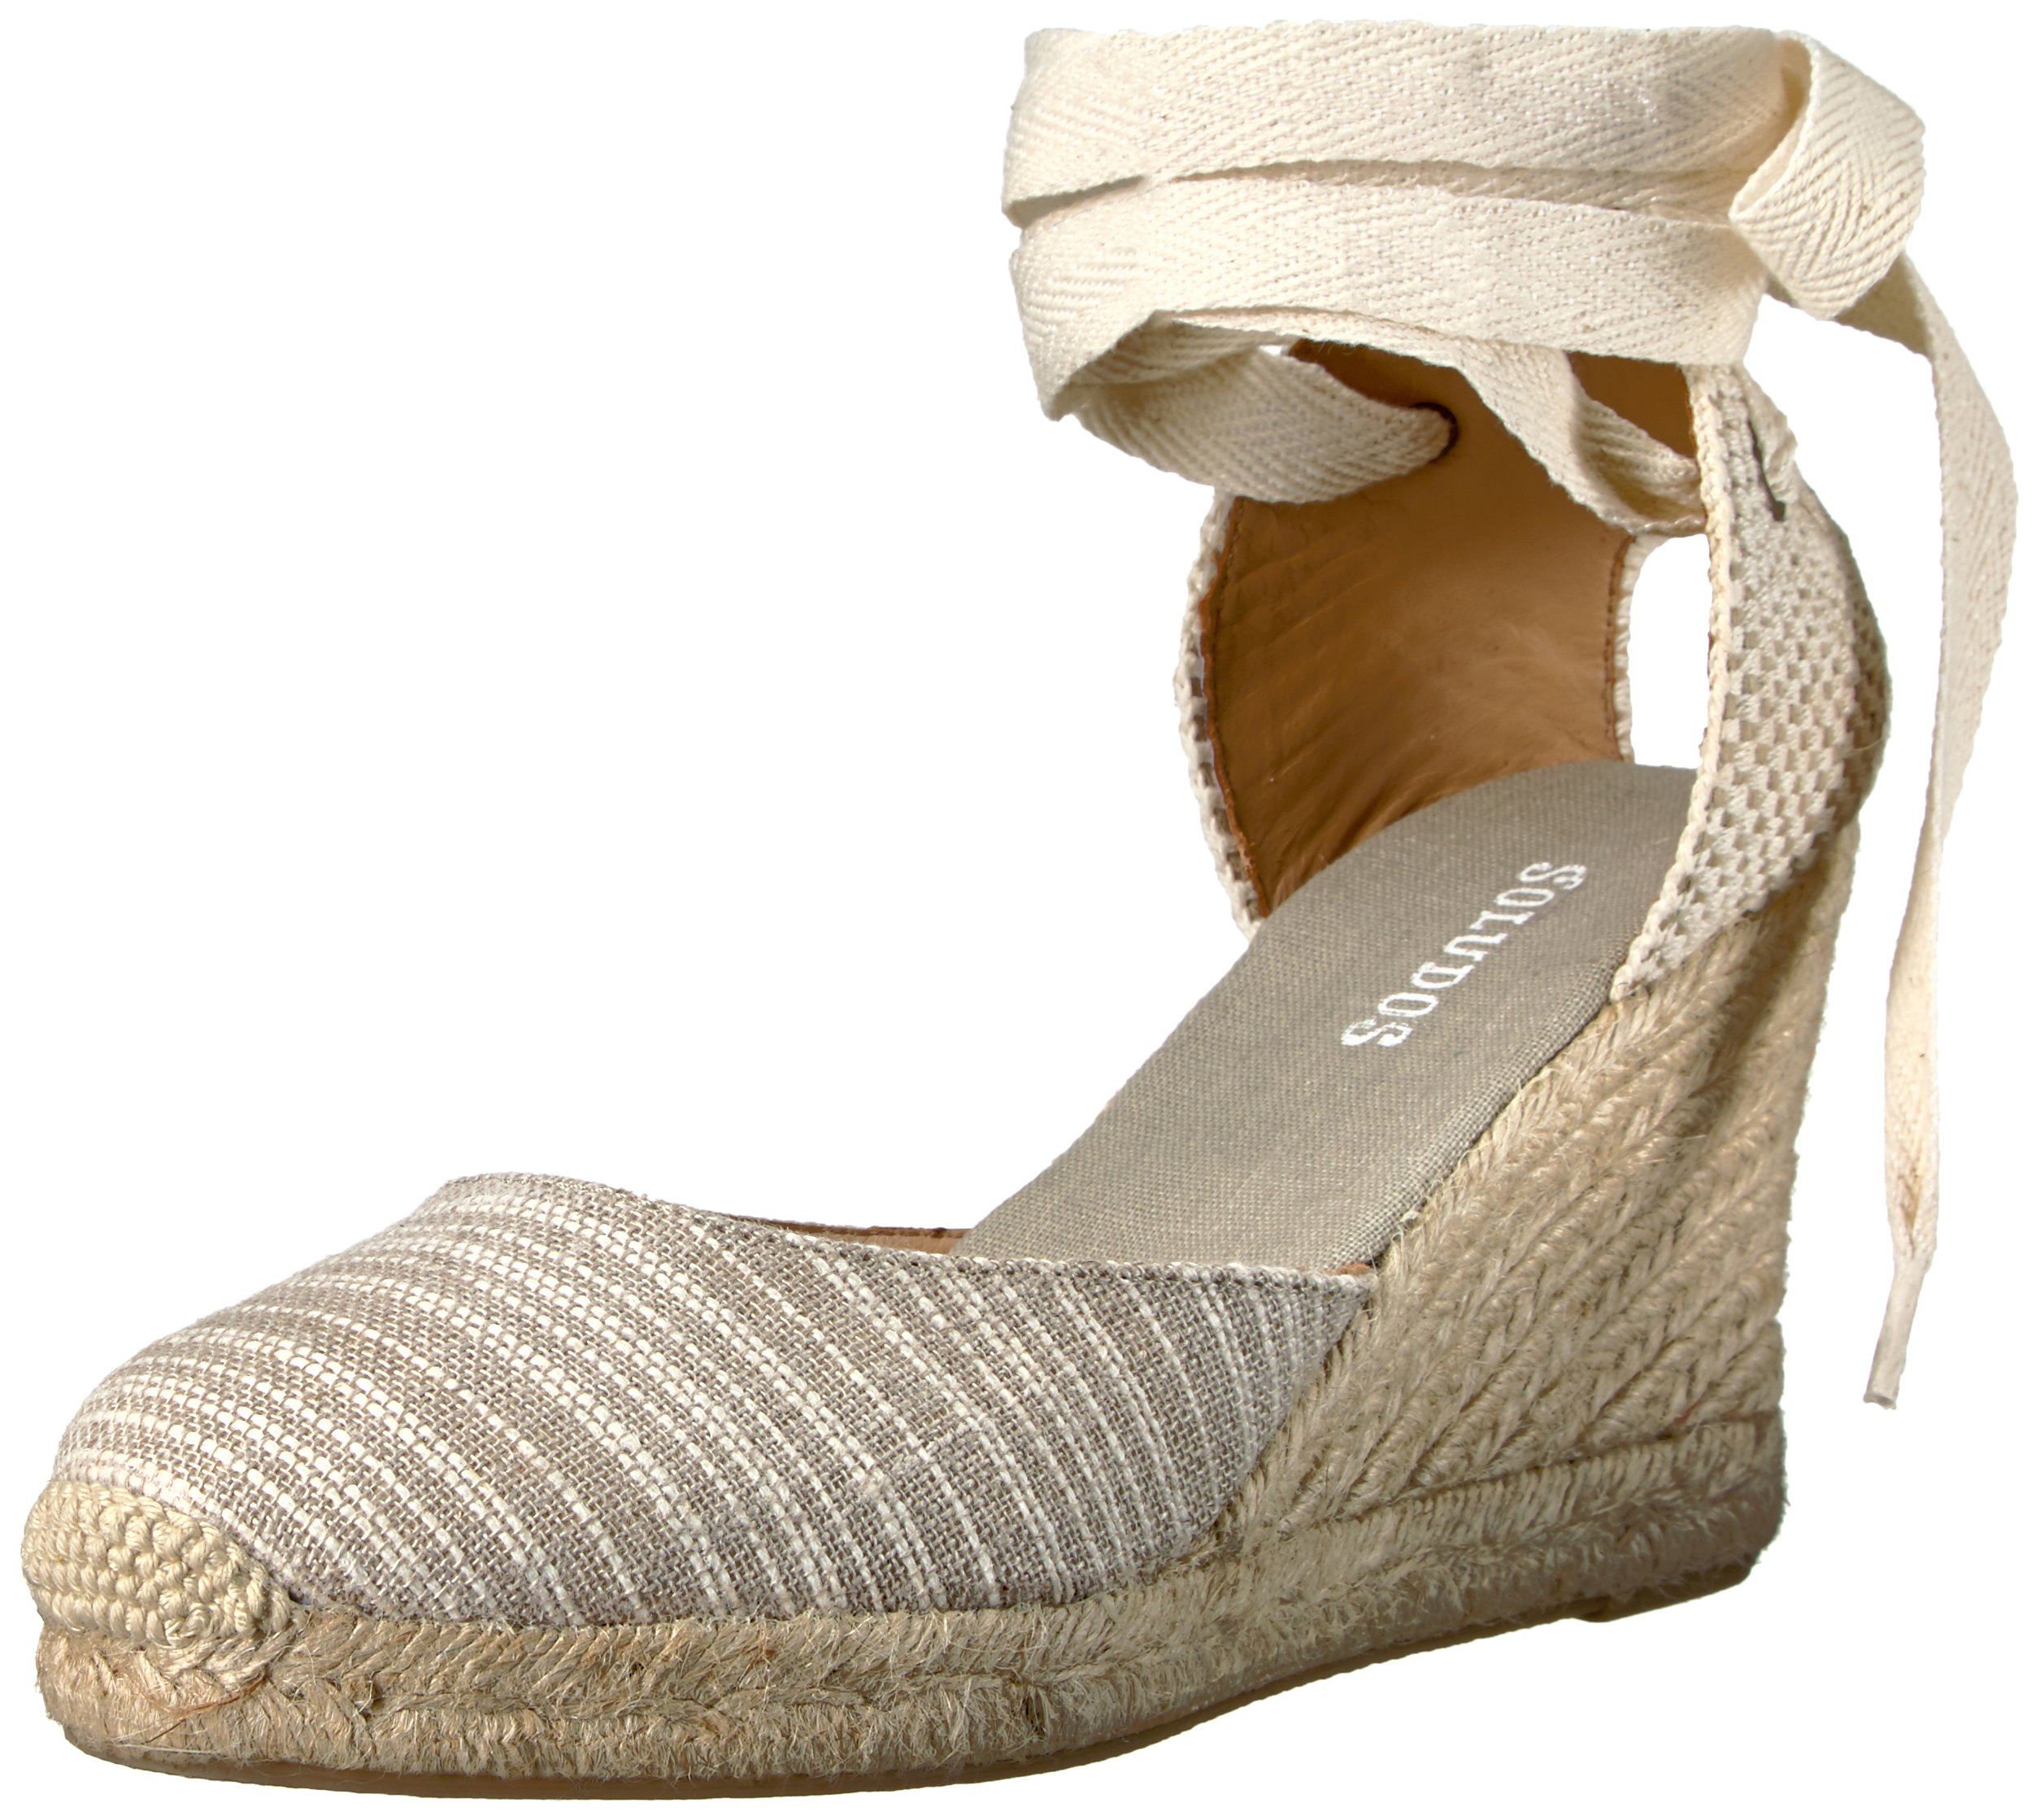 Soludos Women's Striped Tall Wedge (90mm) Flat, Natural, 7 B US